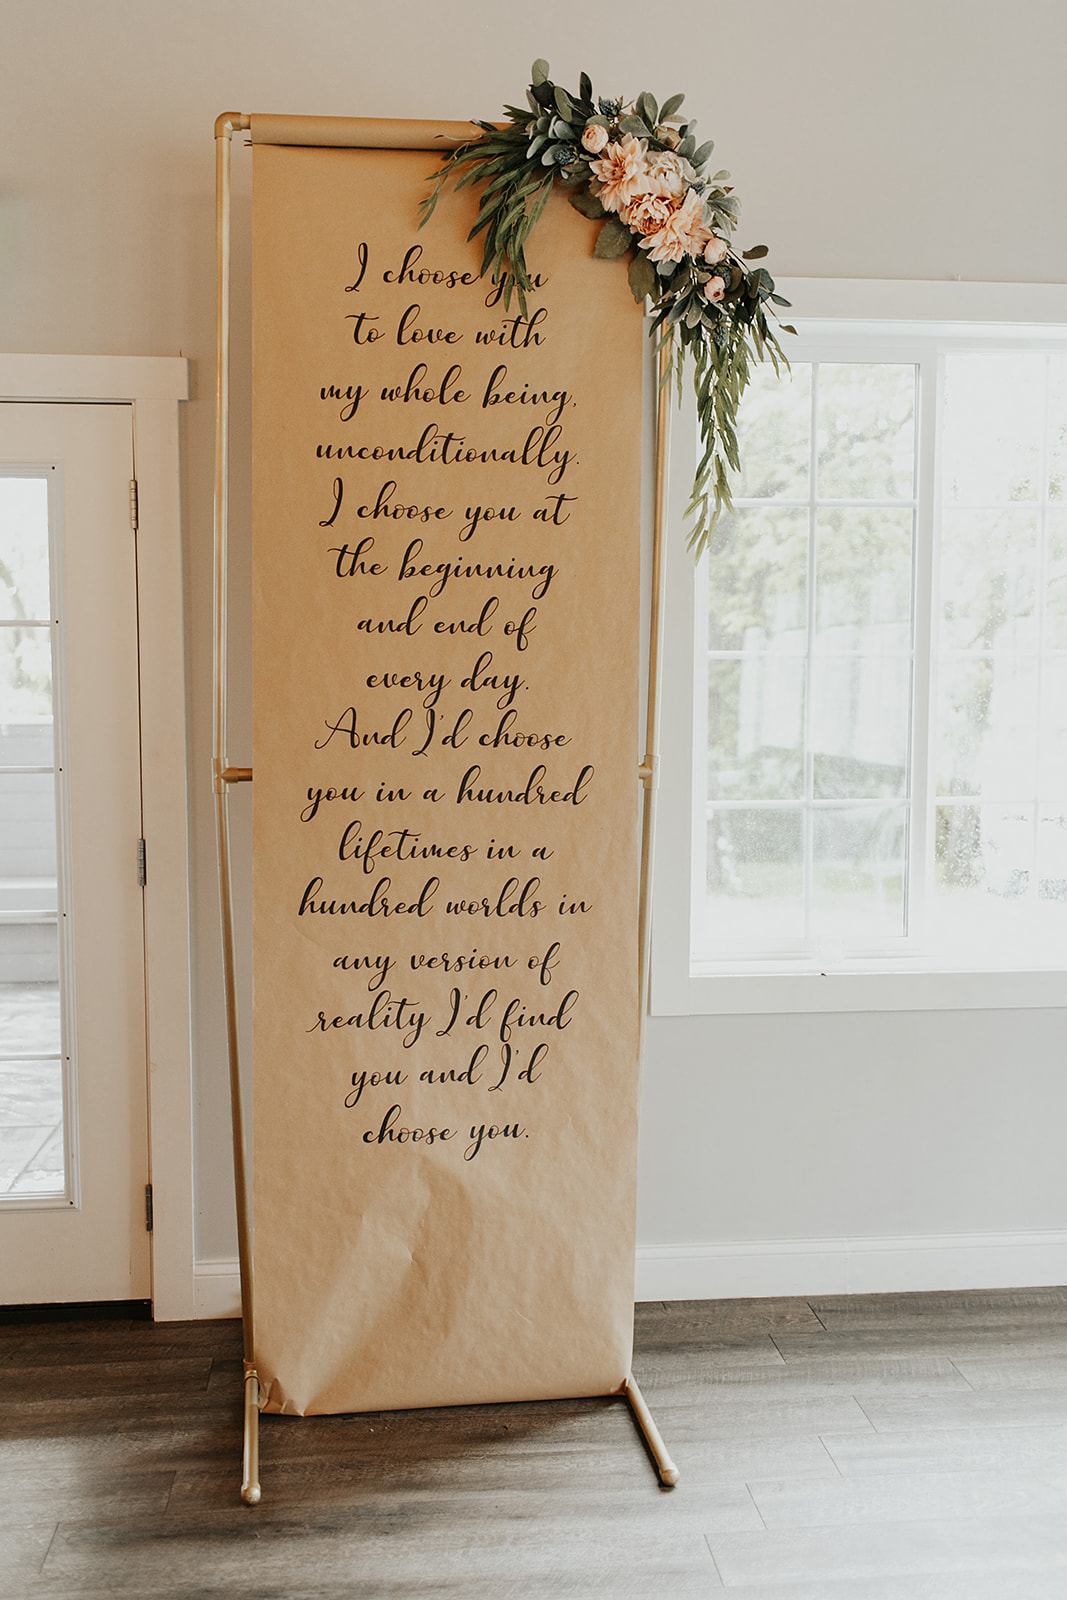 Kendra_and_Mattew_Indiana_Wedding_by_Emily_Wehner-181.jpg